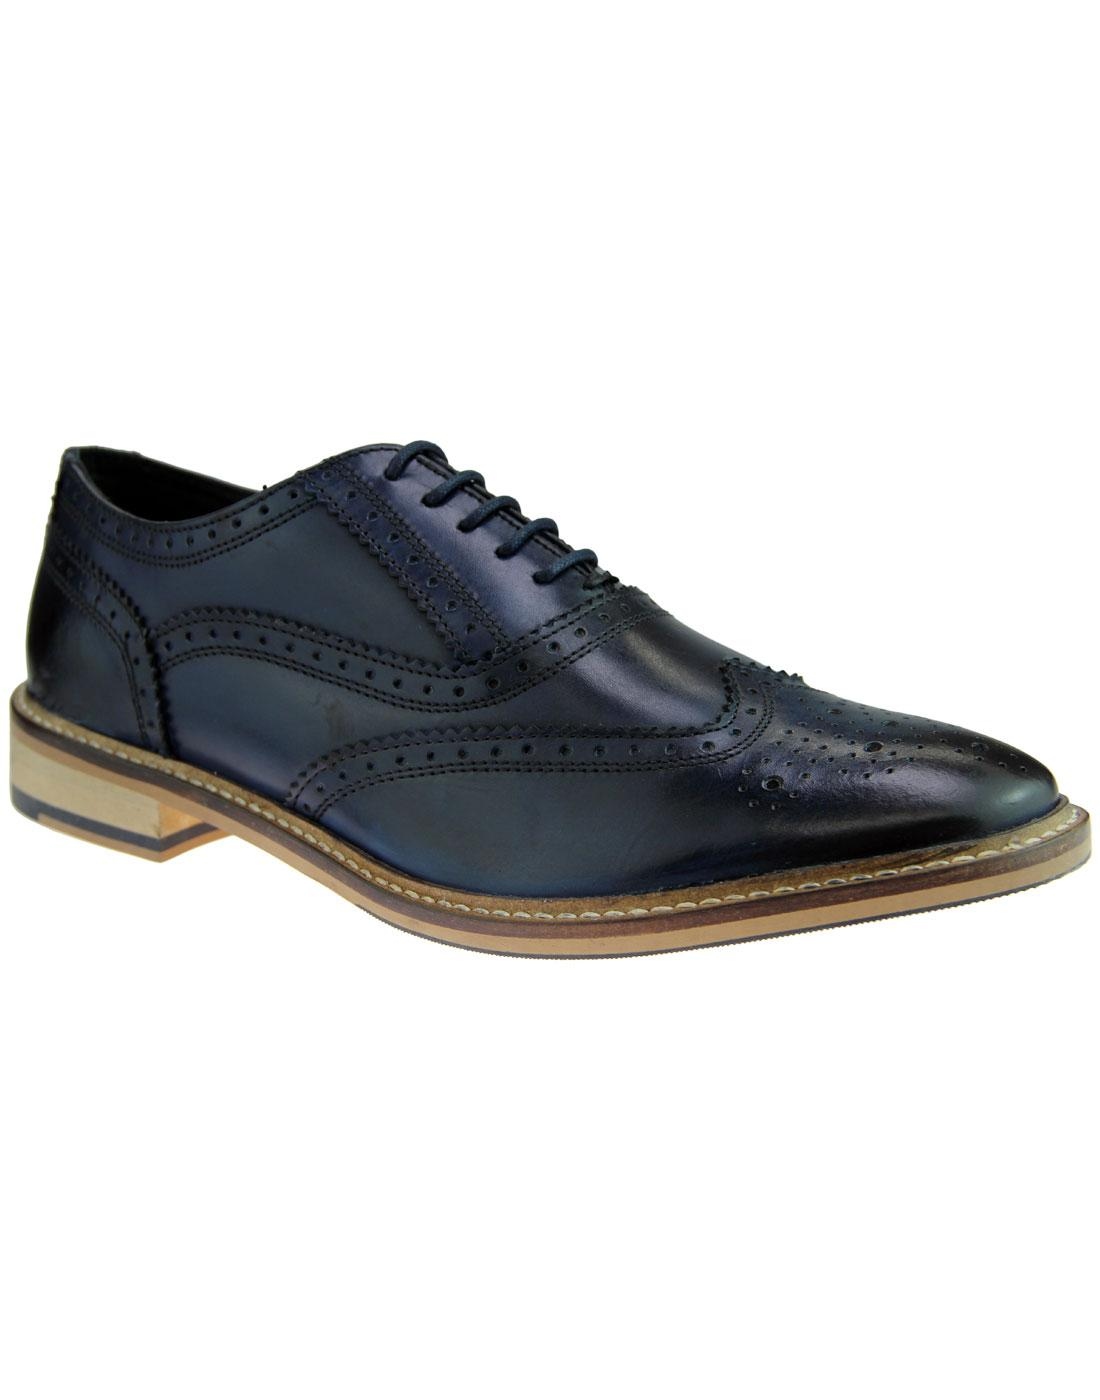 Buster IKON Mens Mod Rub Off Leather Brogues NAVY